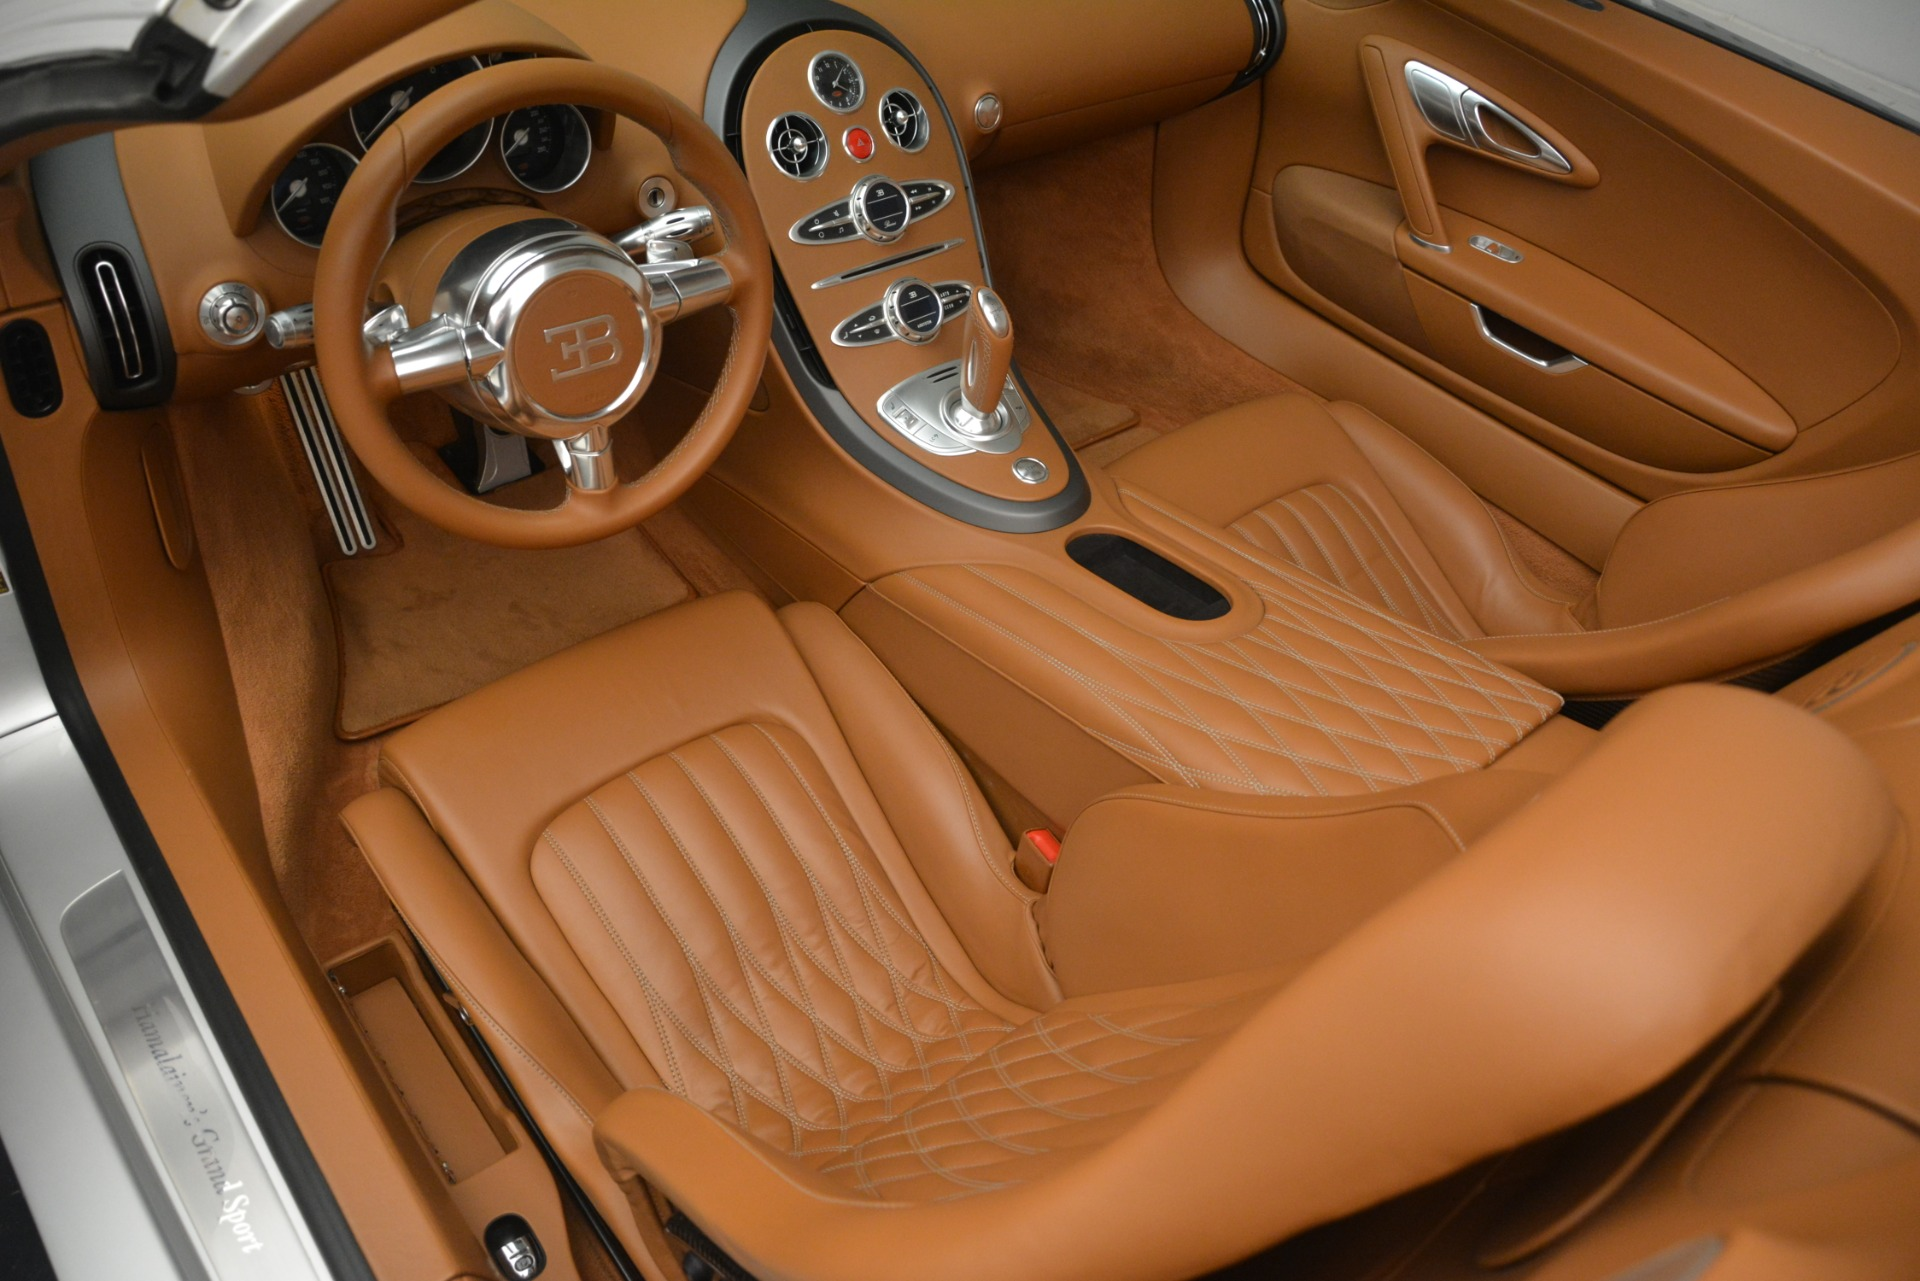 Used 2010 Bugatti Veyron 16.4 Grand Sport For Sale In Westport, CT 3159_p23